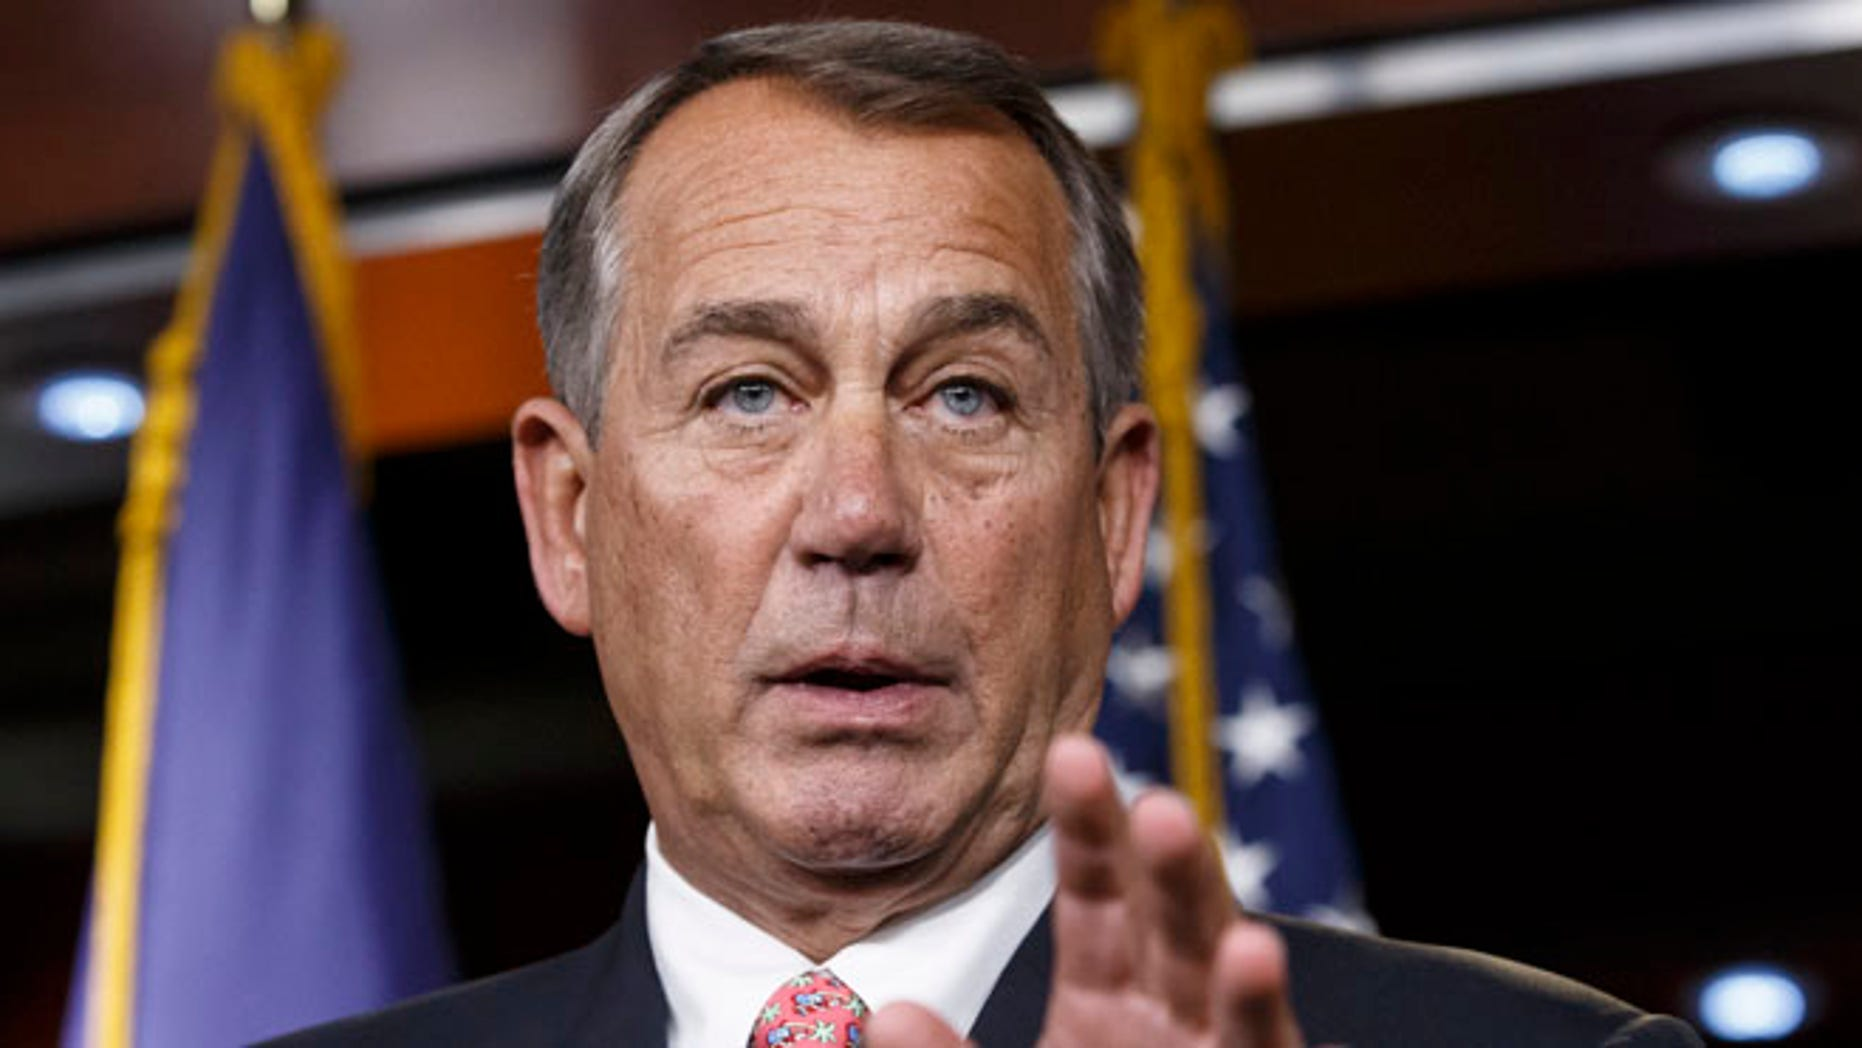 FILE: Dec. 11, 2014: House Speaker John Boehner speaks at a news conference on Capitol Hill, in Washington, D.C.